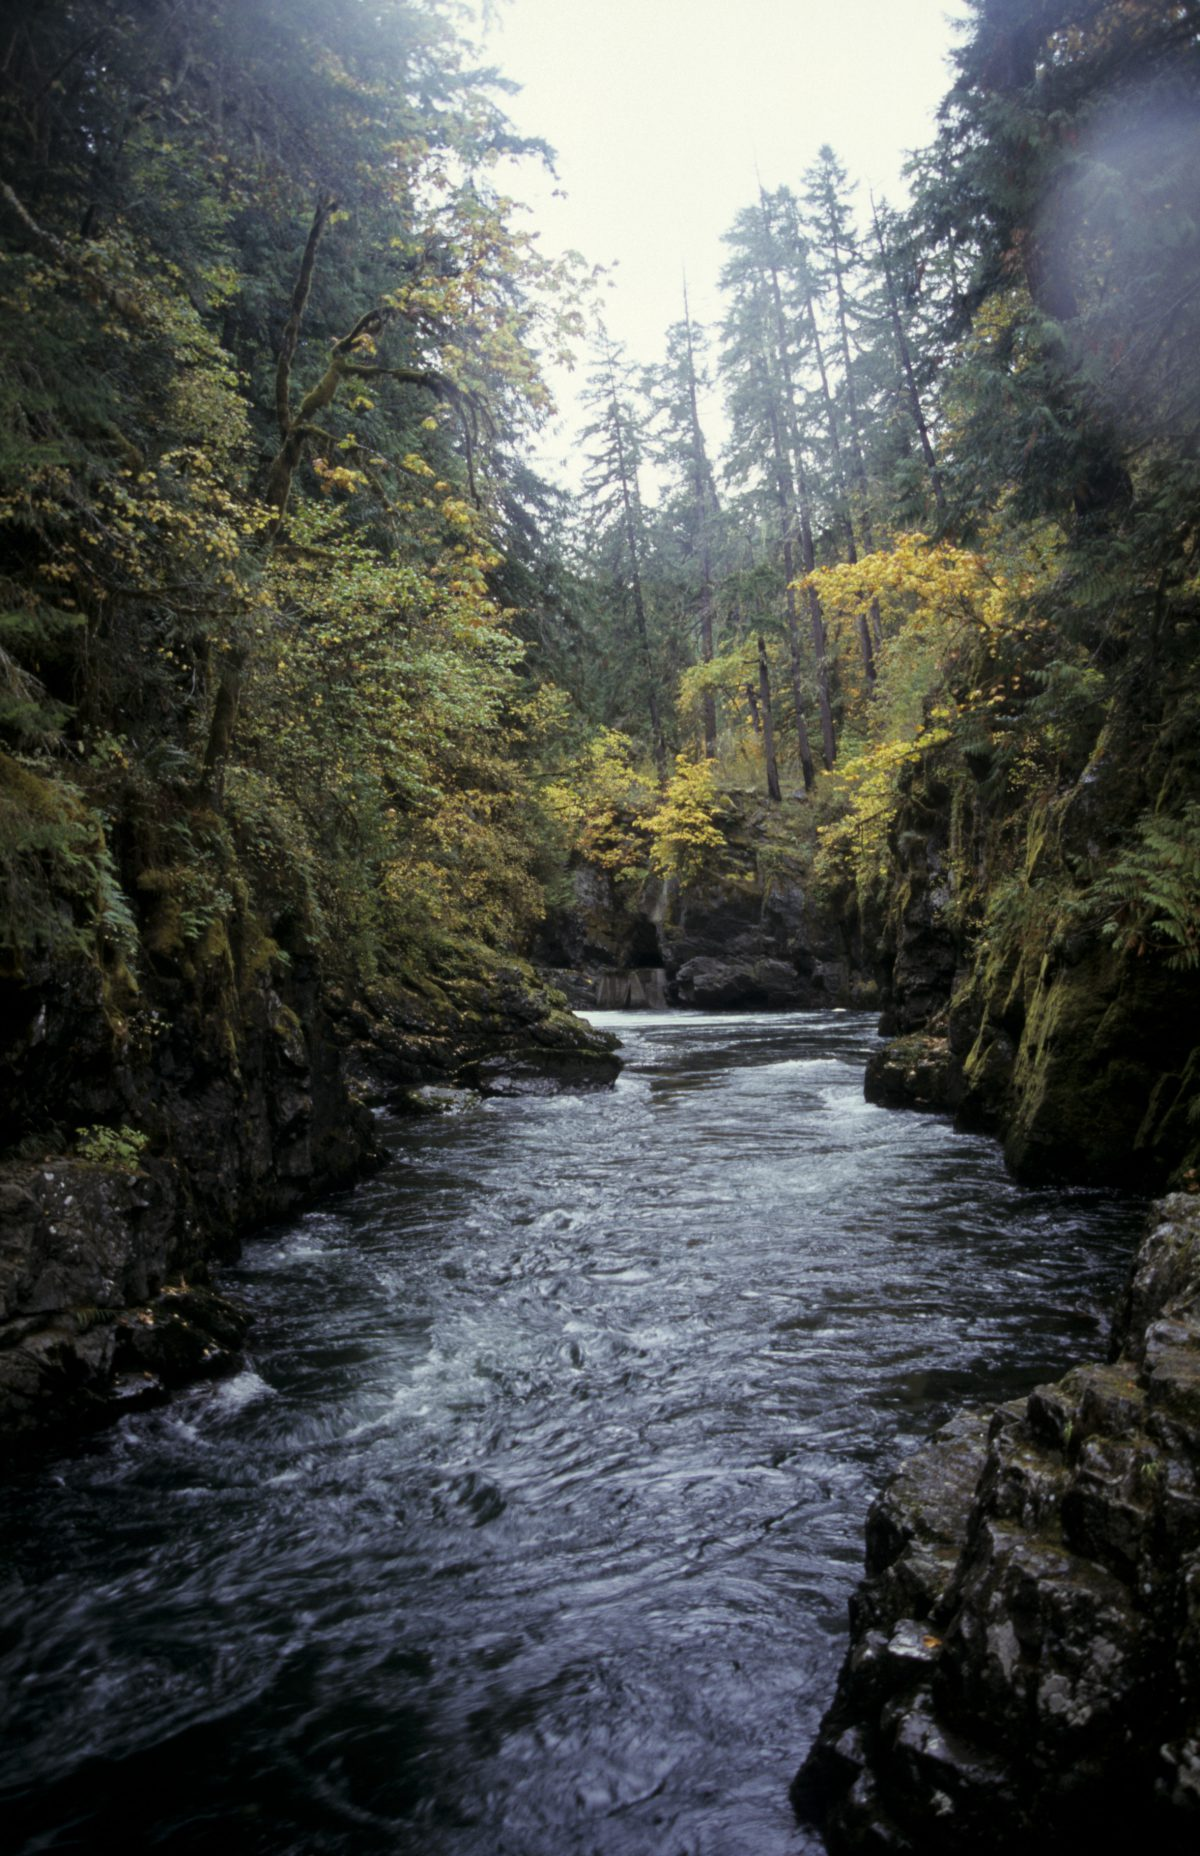 River - with Salmons swimming upstream, forest, river